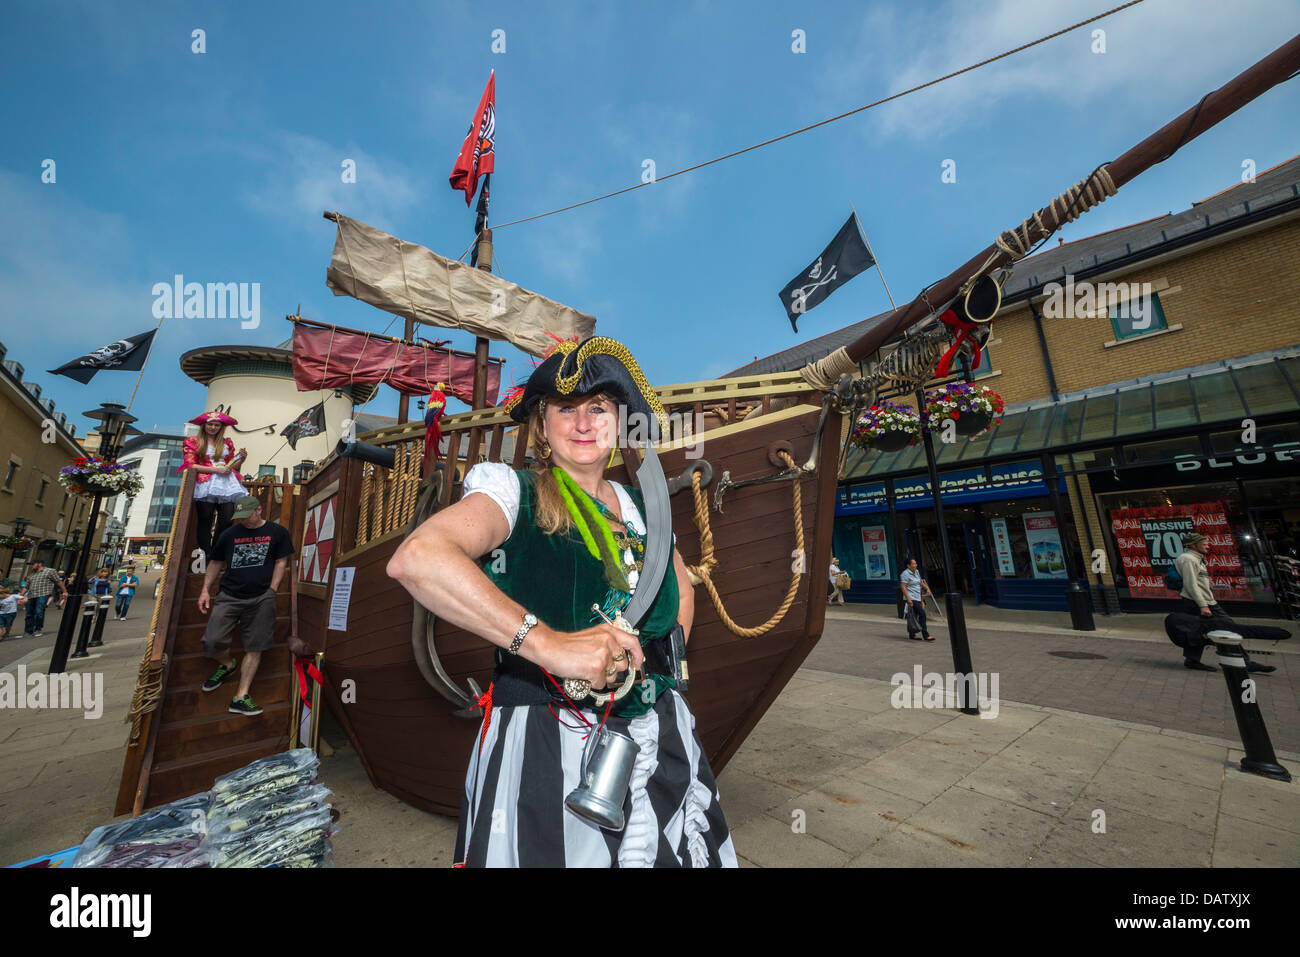 Hastings Pirate day celebrations, Queens square, Priory Meadow, Hastings, England, UK - Stock Image